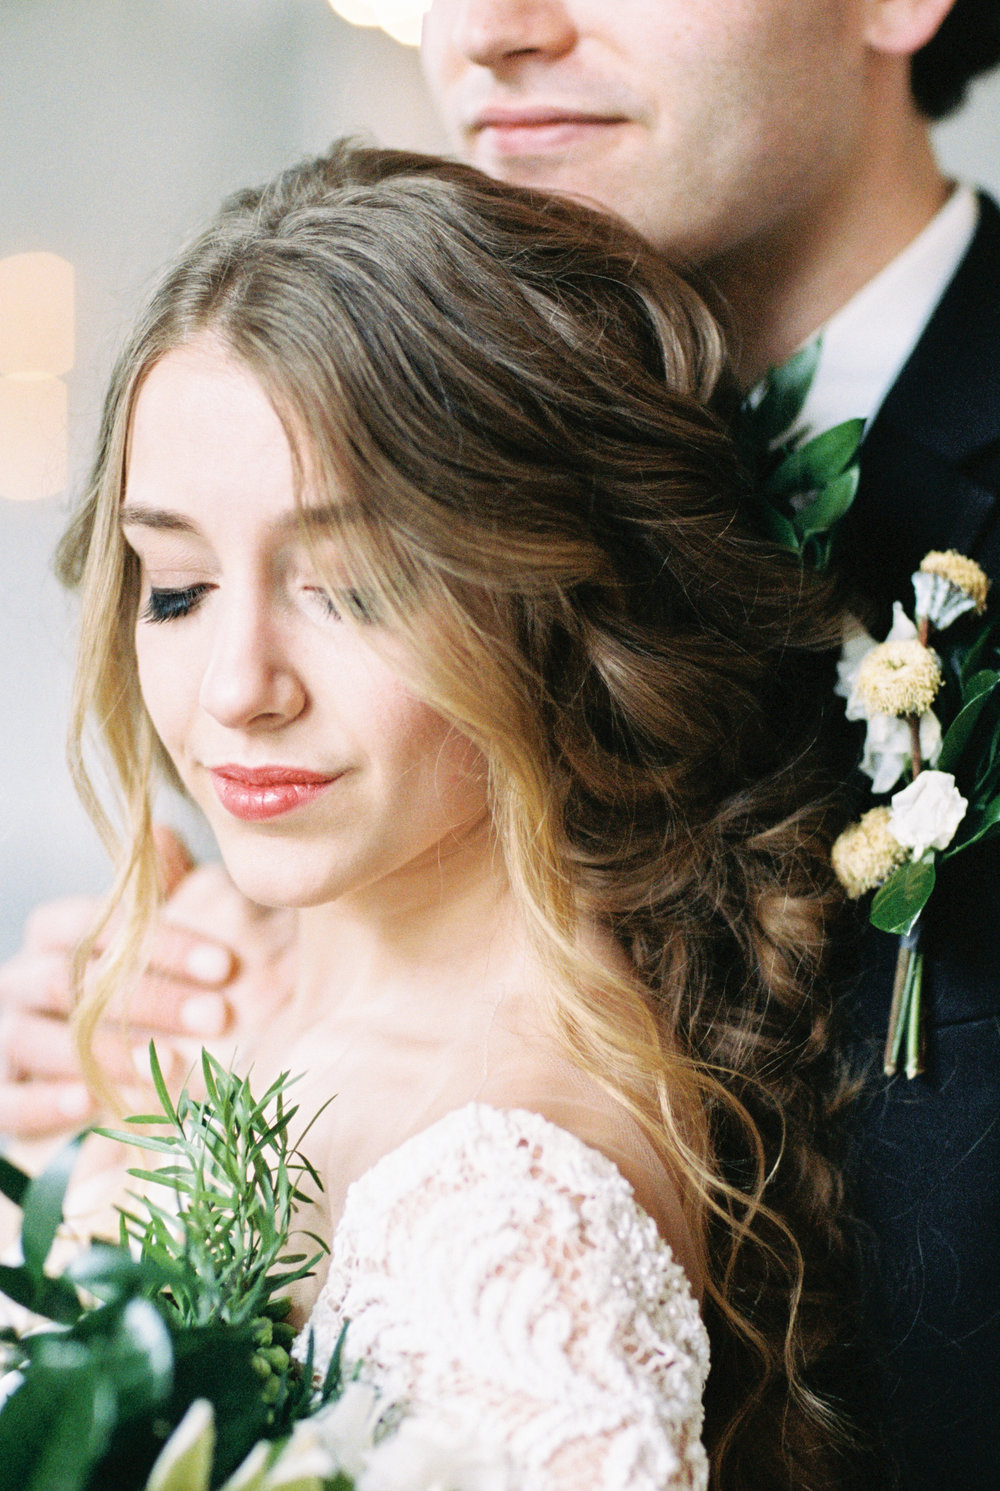 Boho bride's natural wedding makeup at modern wedding venue for this Chicago wedding styled shoot. Find more wedding inspiration at chitheewed.com!